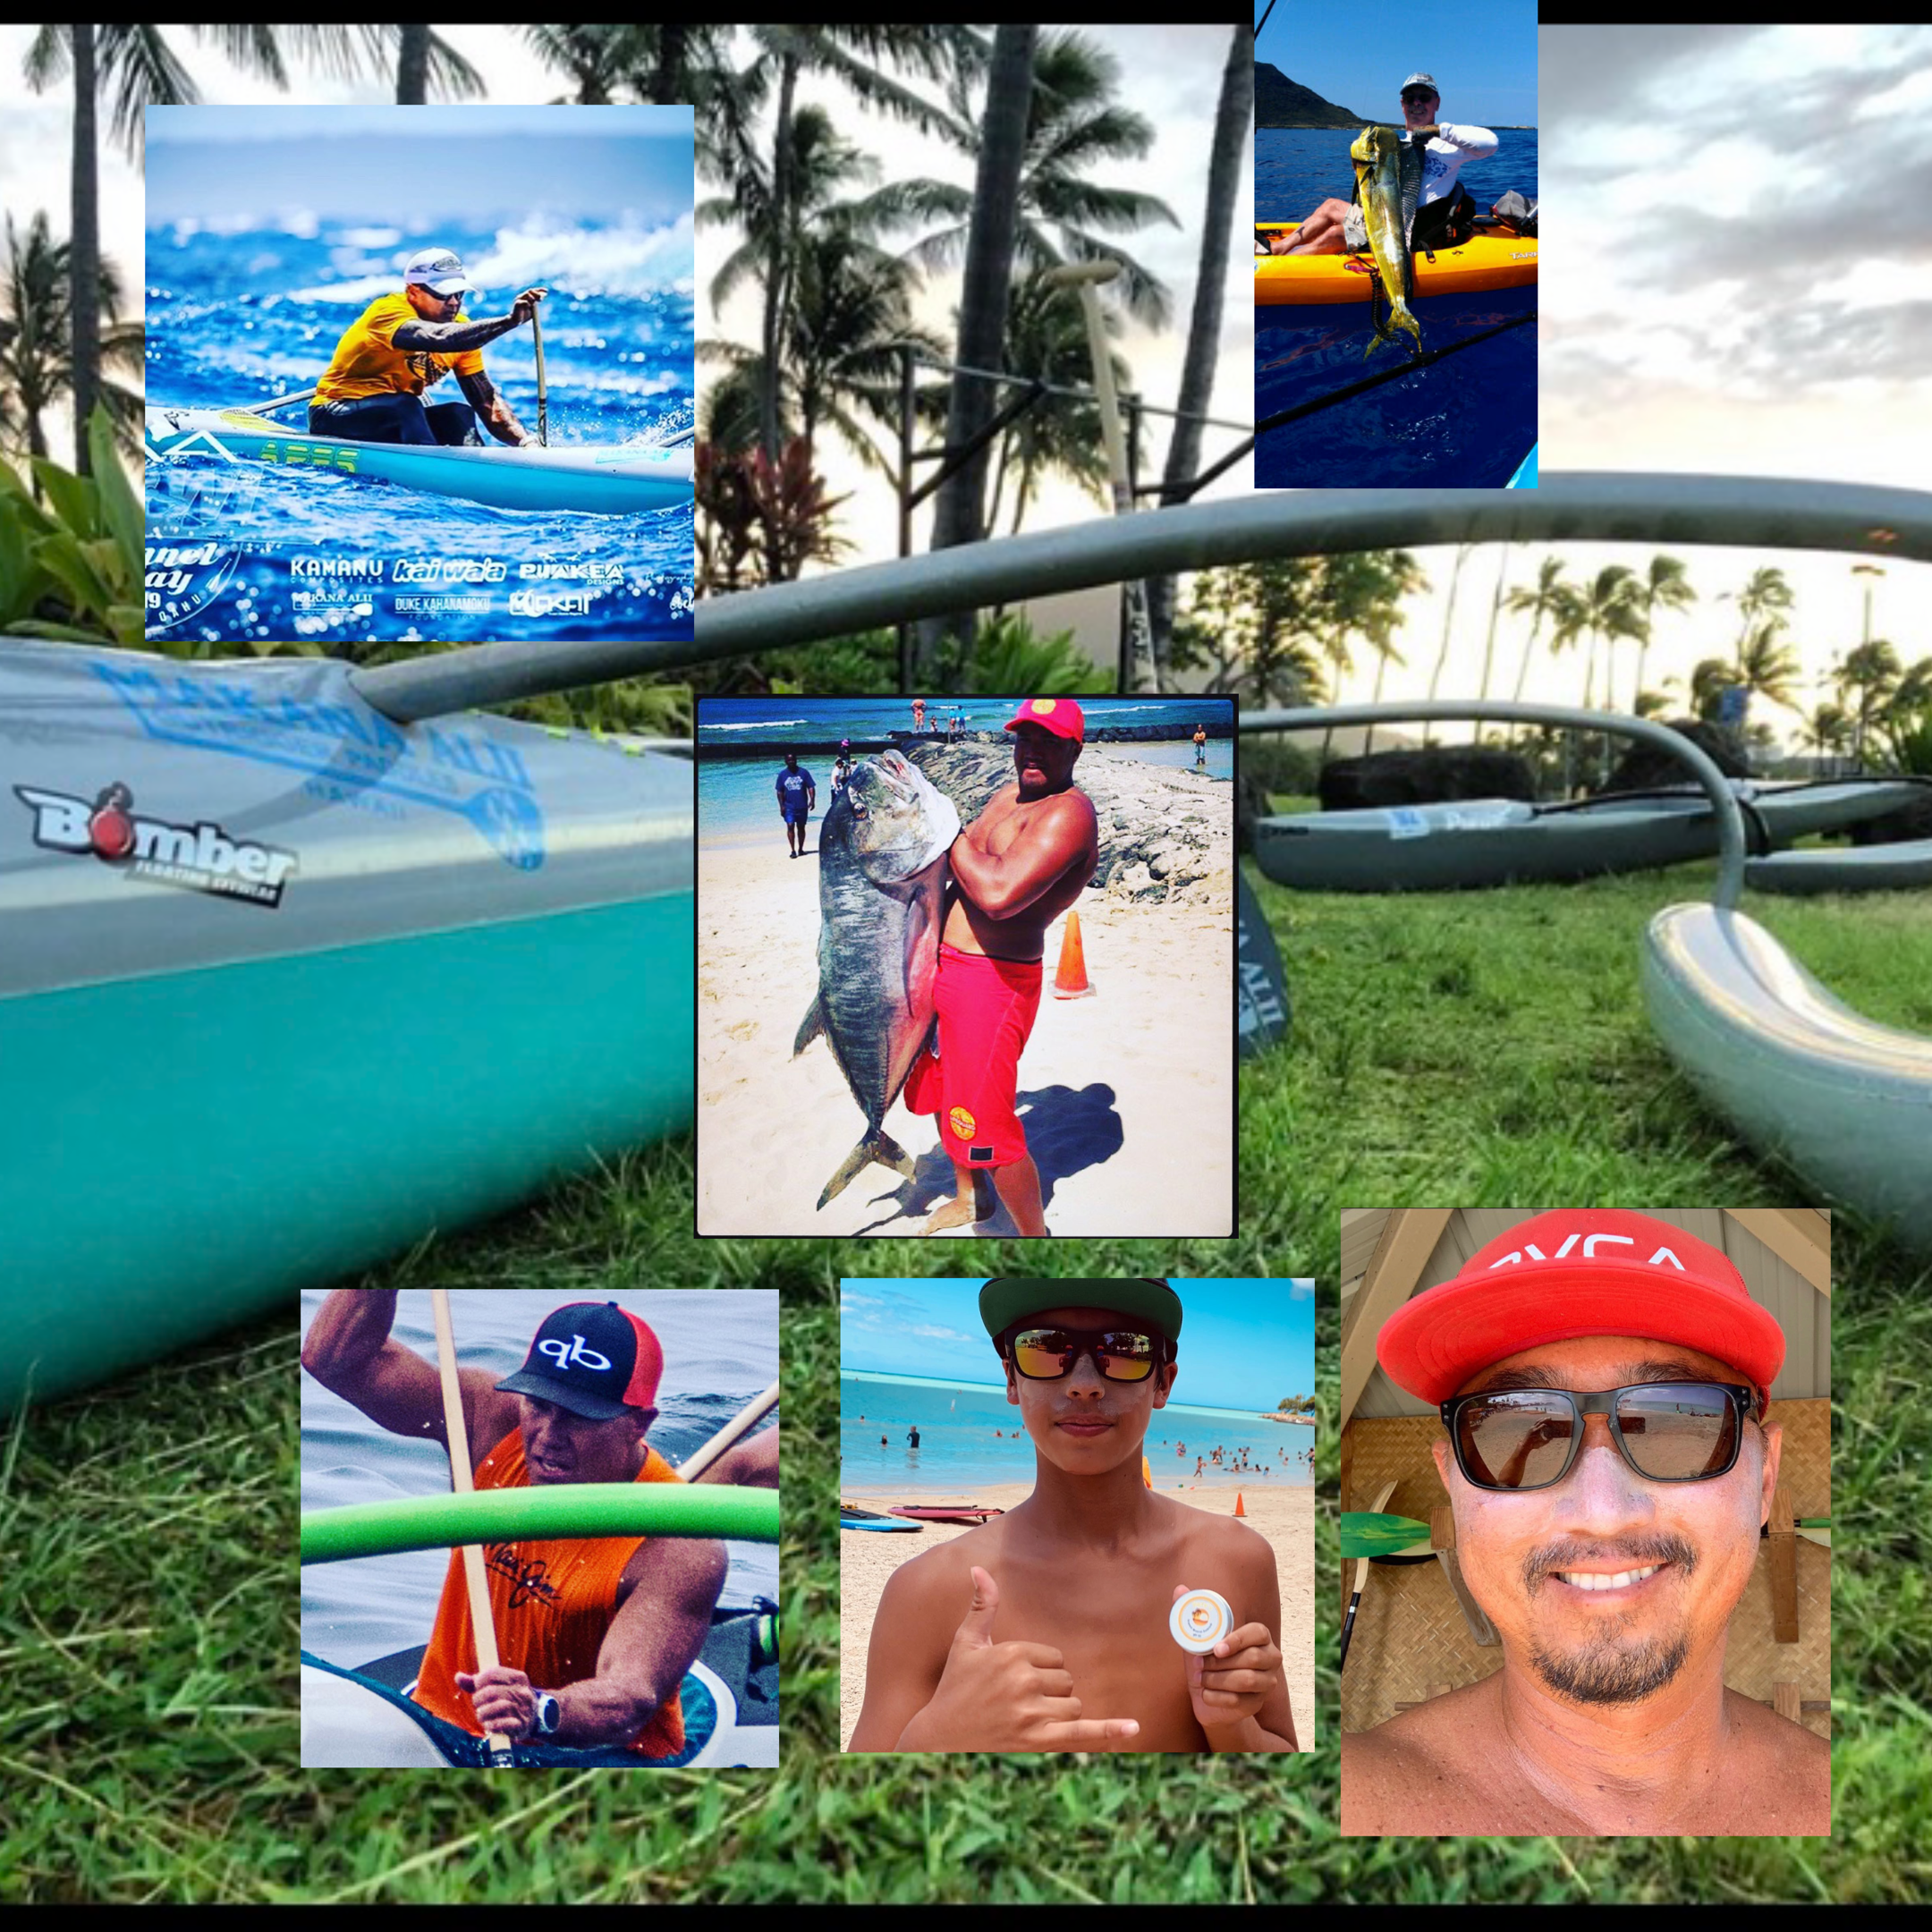 Watermen tested - Our products are put through rigorous testing by some of Hawaii's finest watermen.